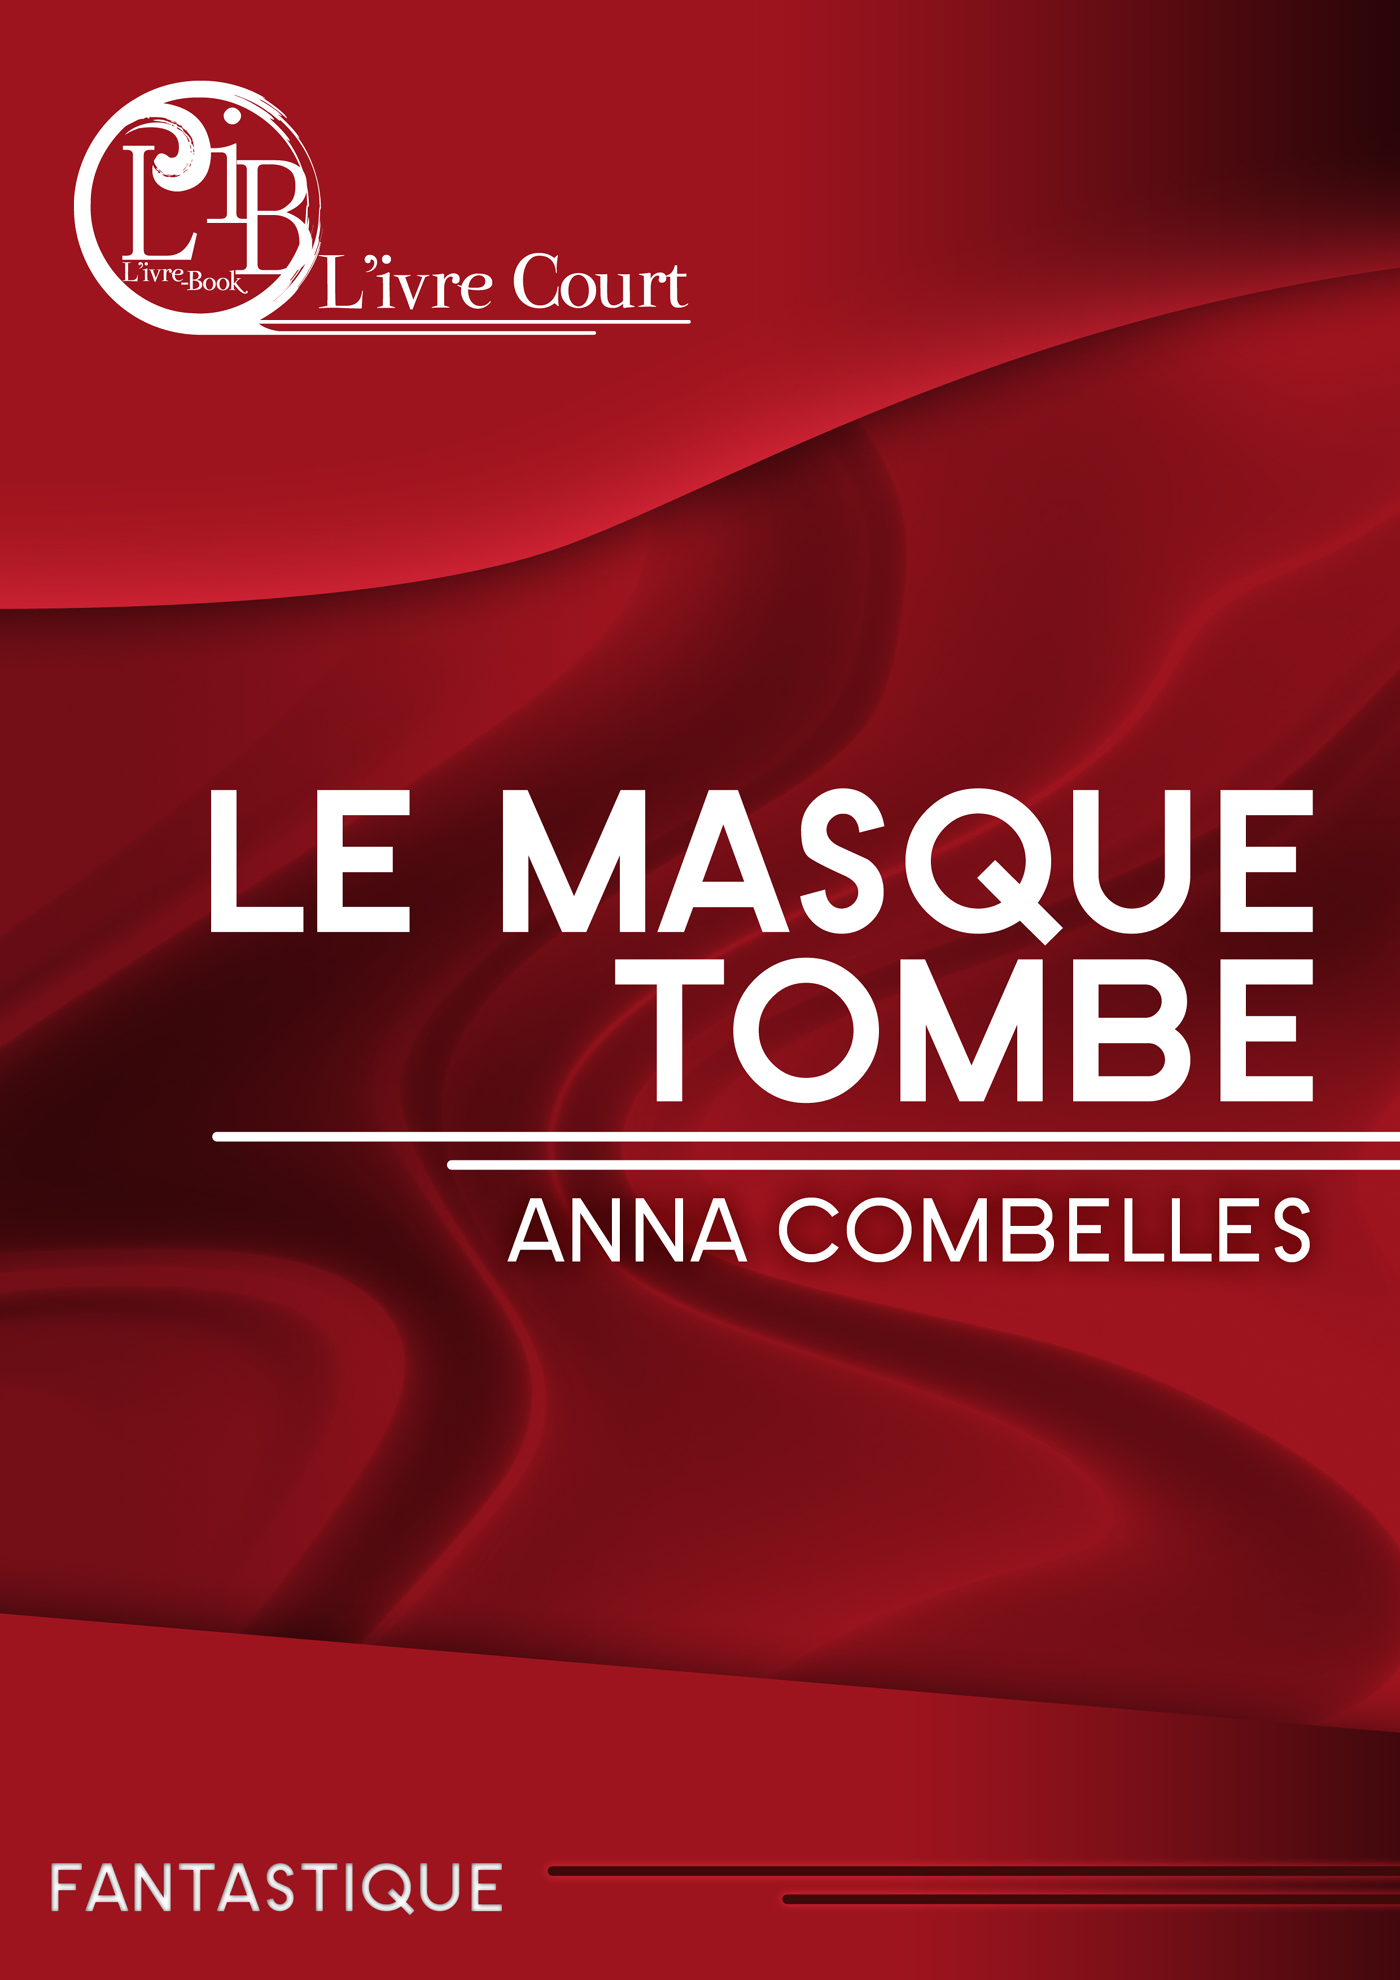 Le masque tombe